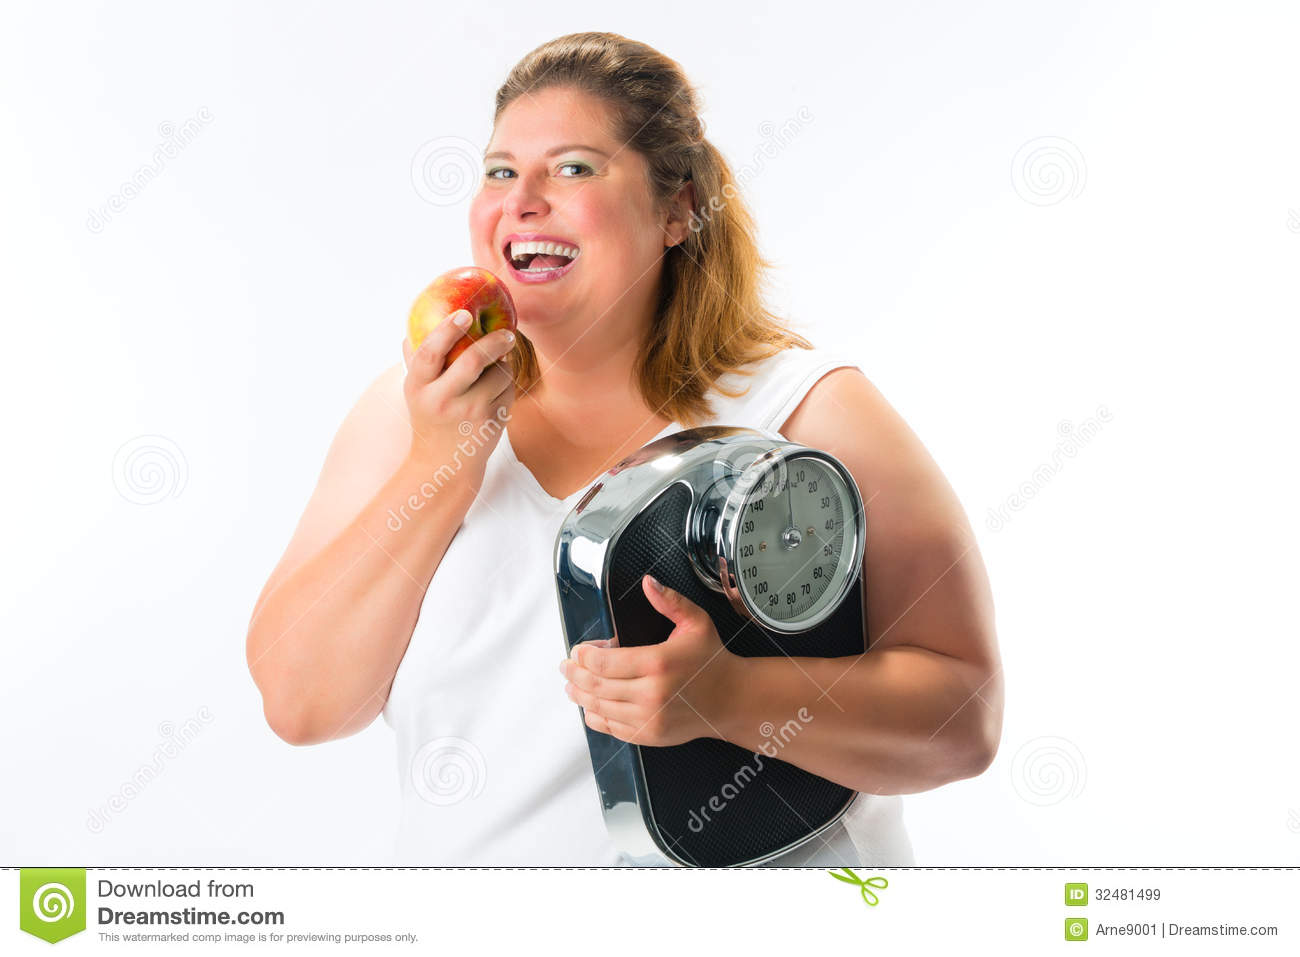 how to lose weight under arms